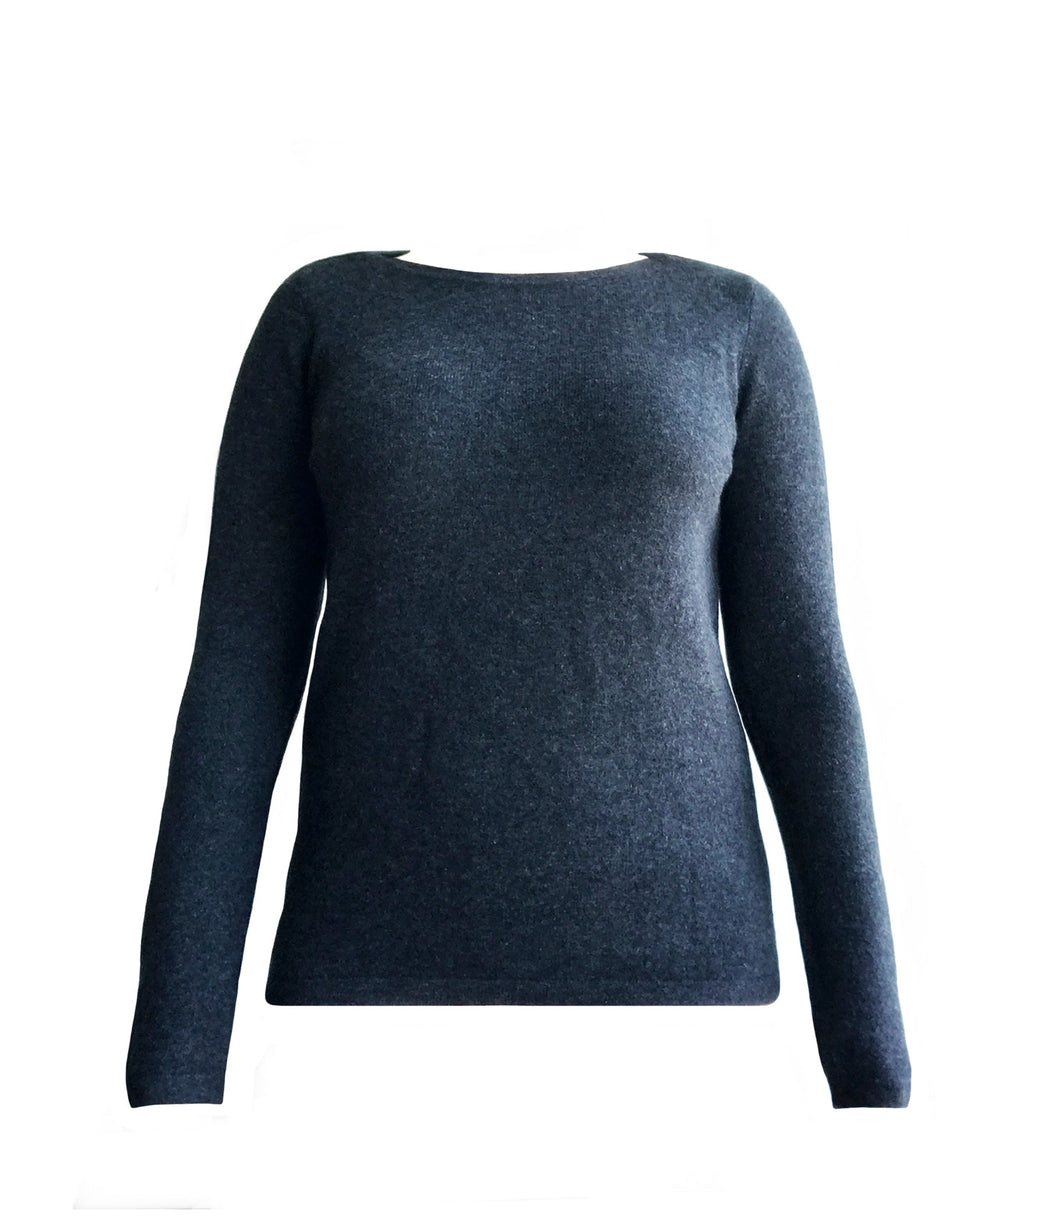 Cashmere Boatneck Sweater in Charcoal